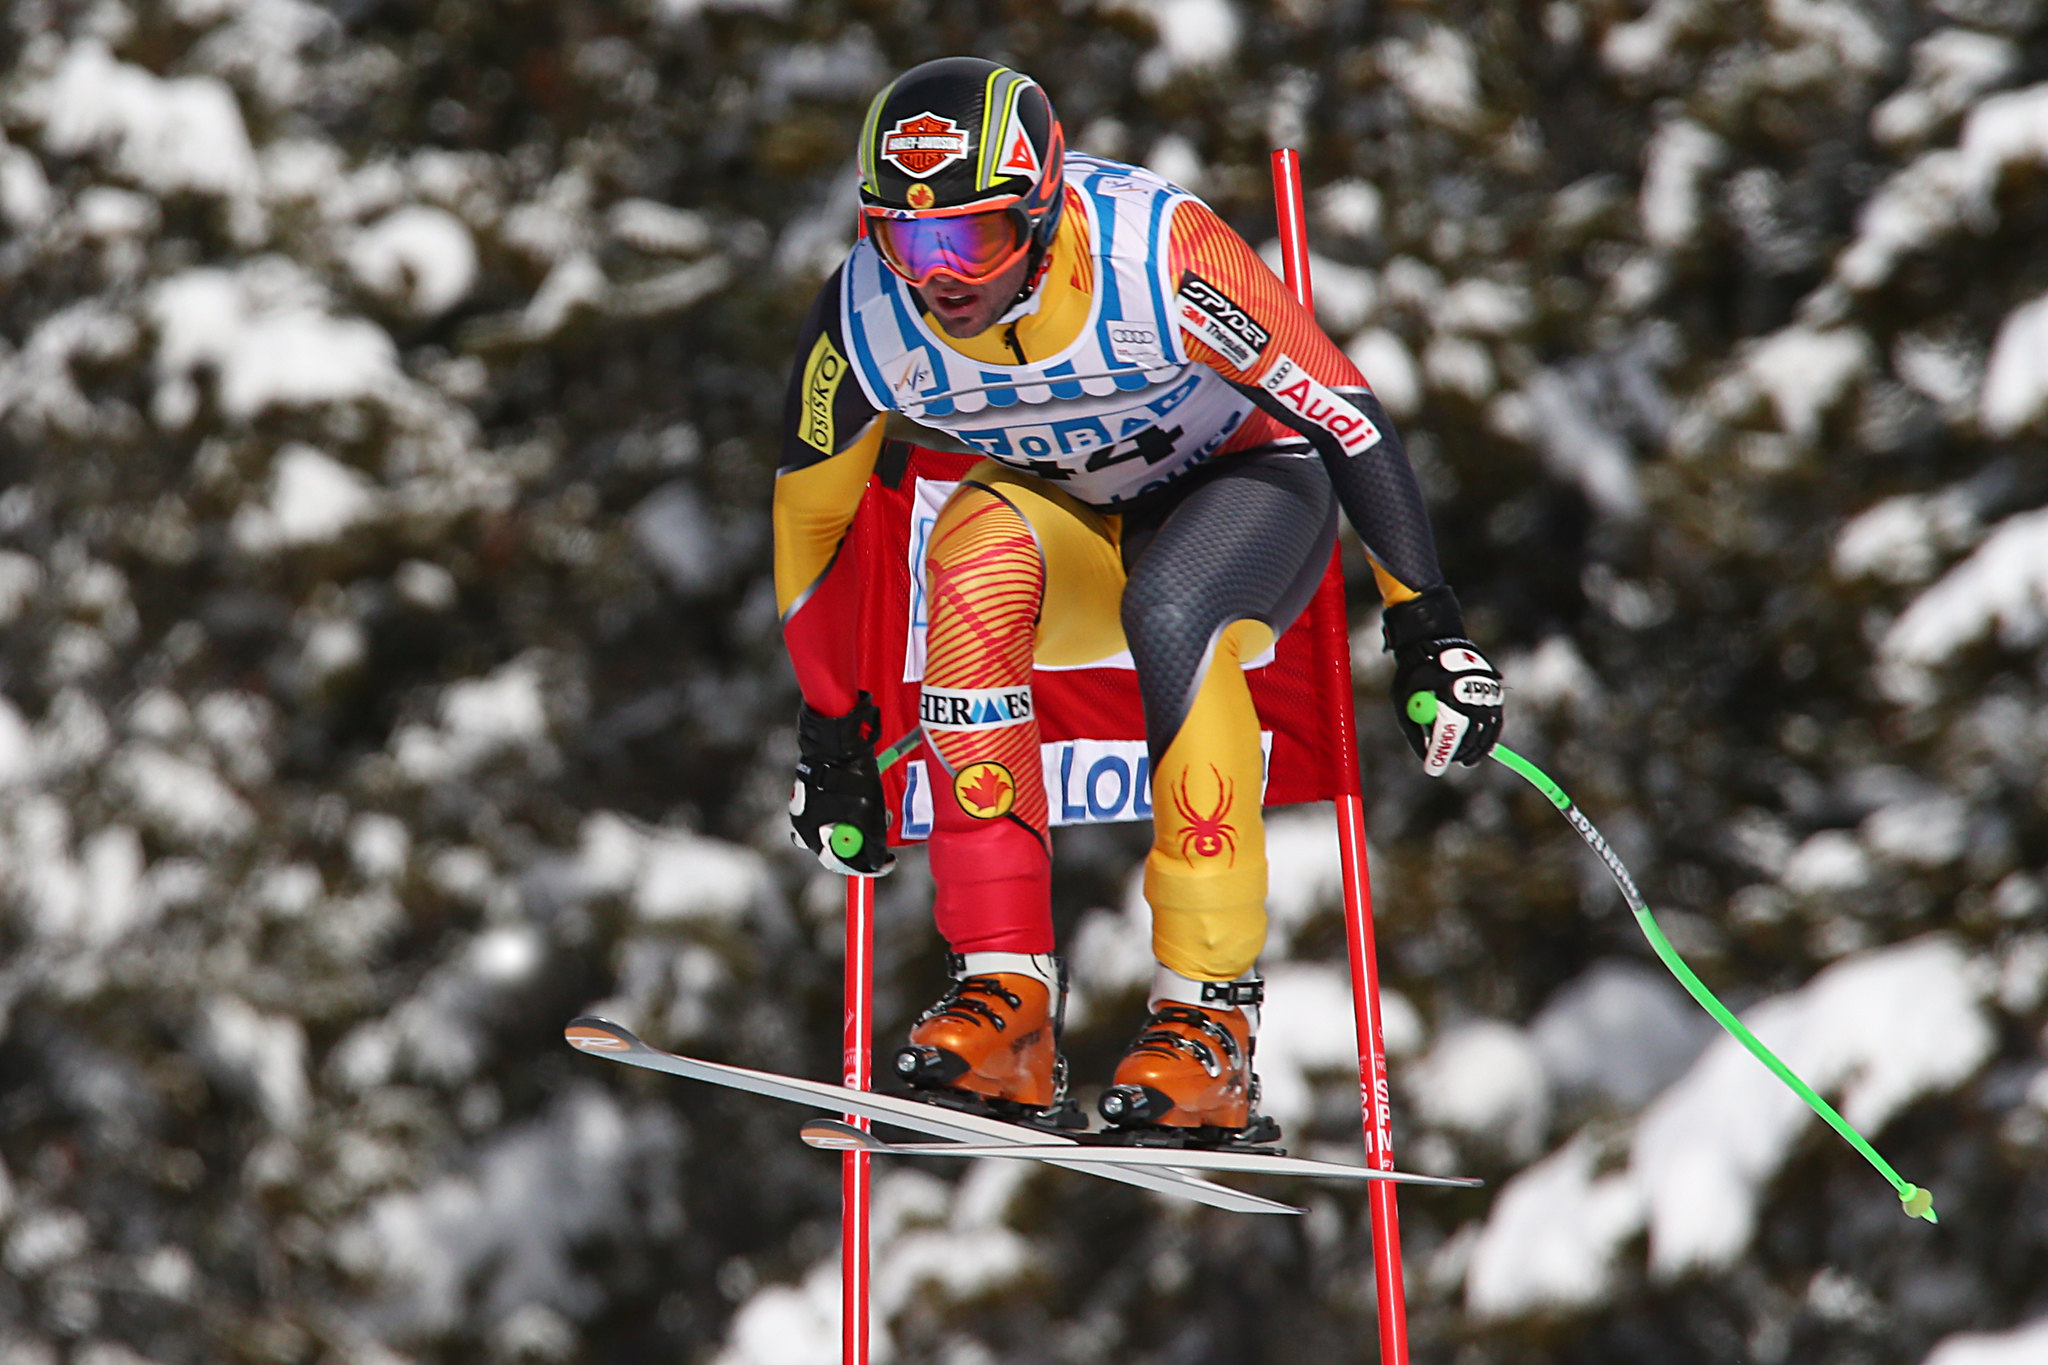 Manuel Osborne-Paradis during World Cup downhill in Lake Louise.